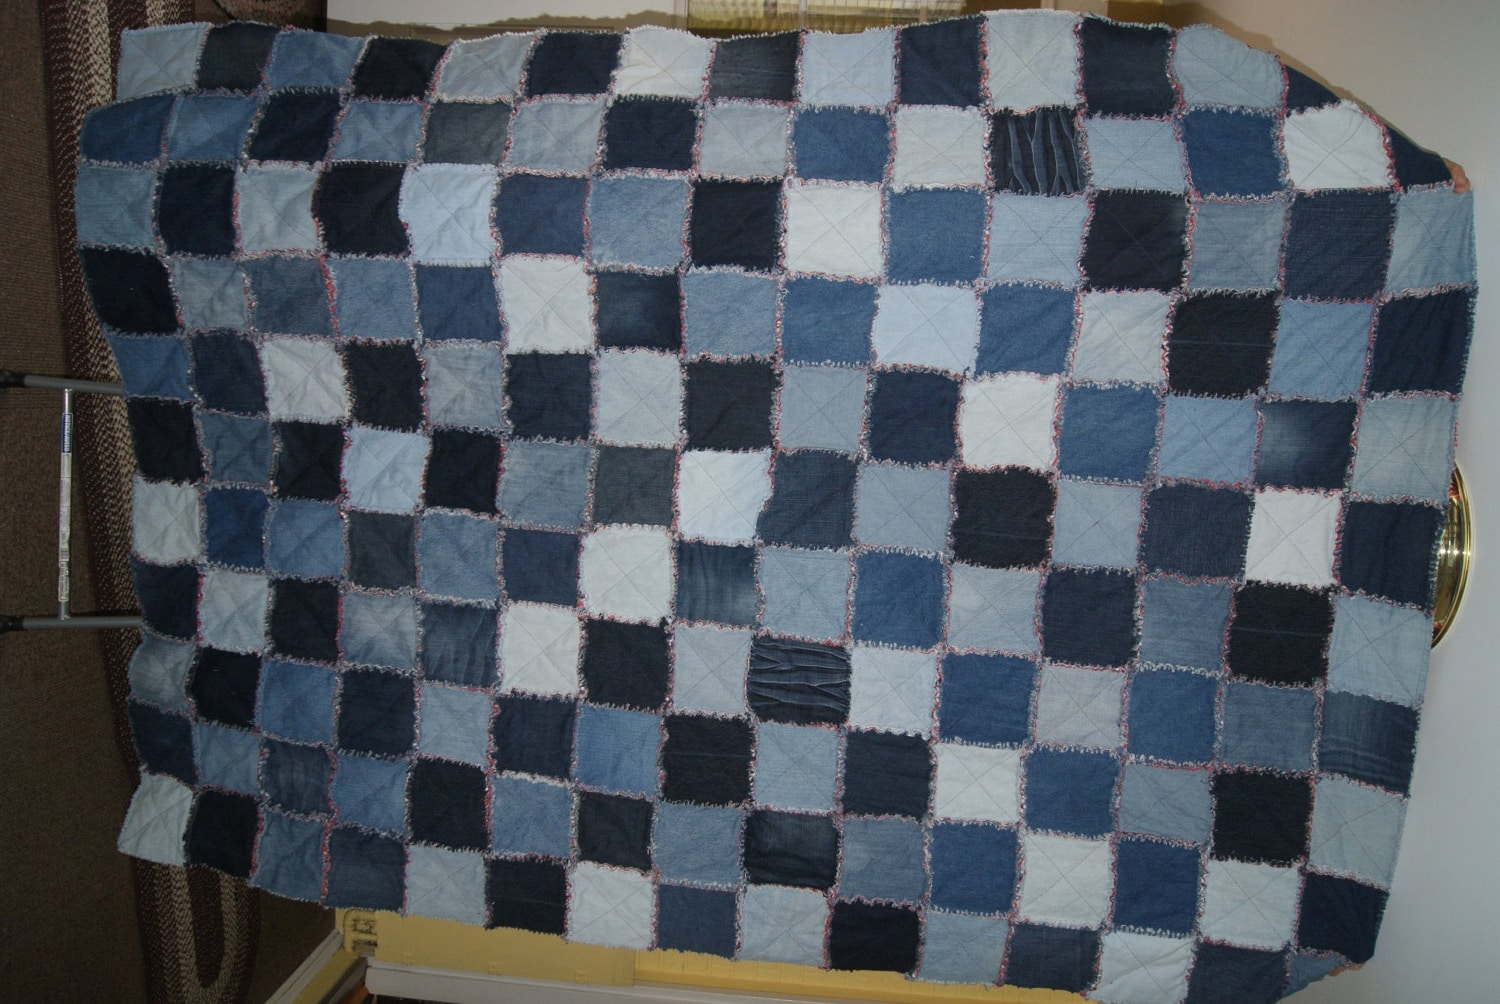 Rag Quilt Patterns For Twin Bed : Denim Rag Quilt Twin Size